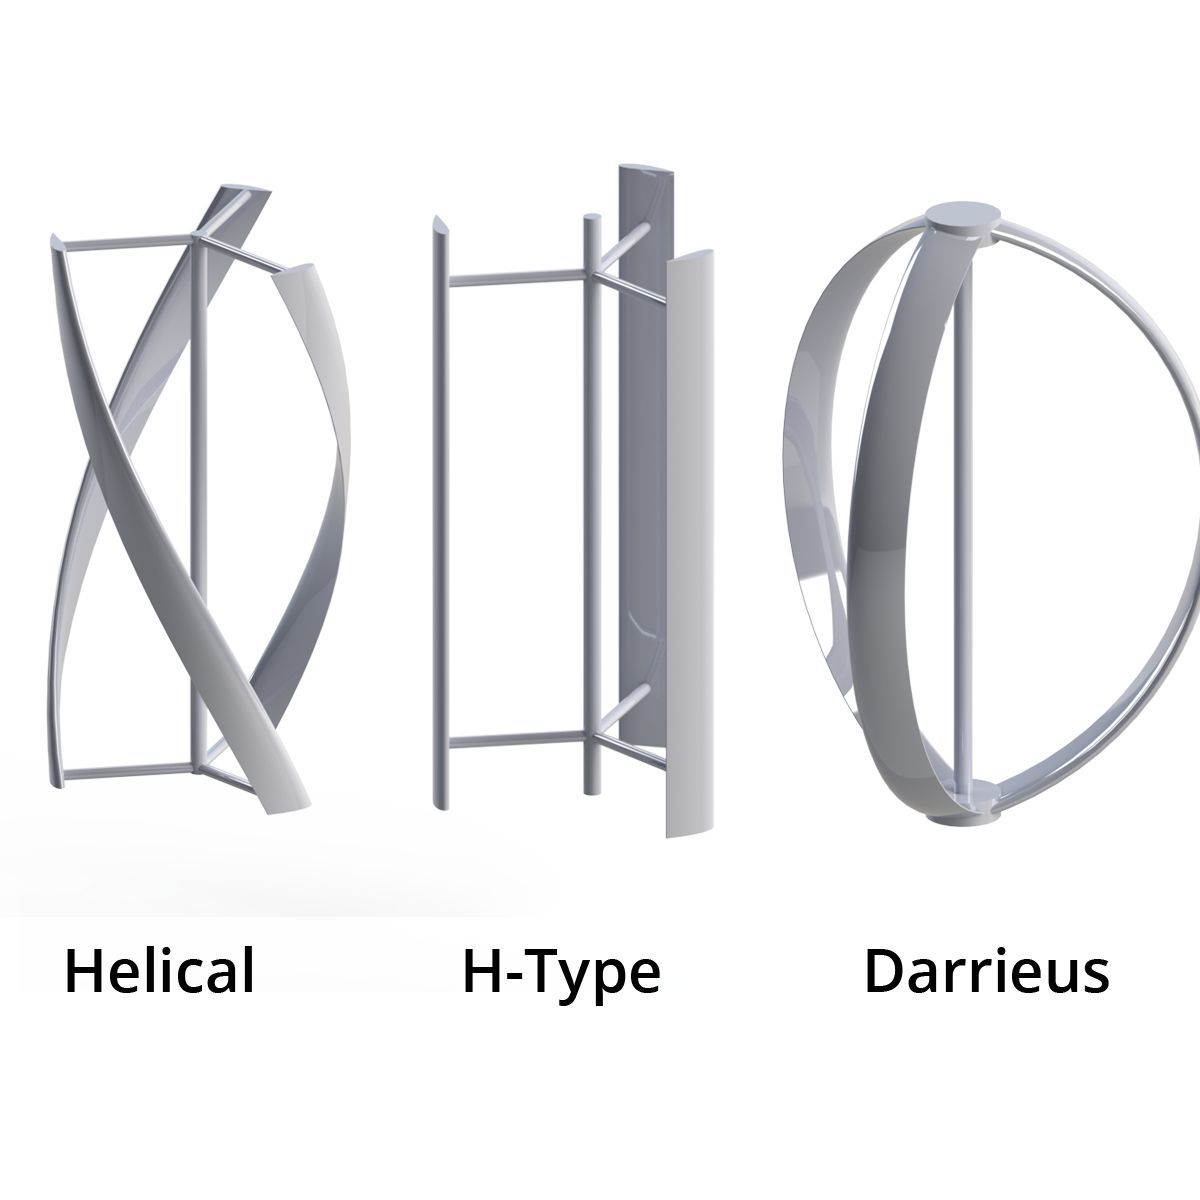 3 Types of Darrieus Vertical Axis Wind Turbine ALTERNATIVE